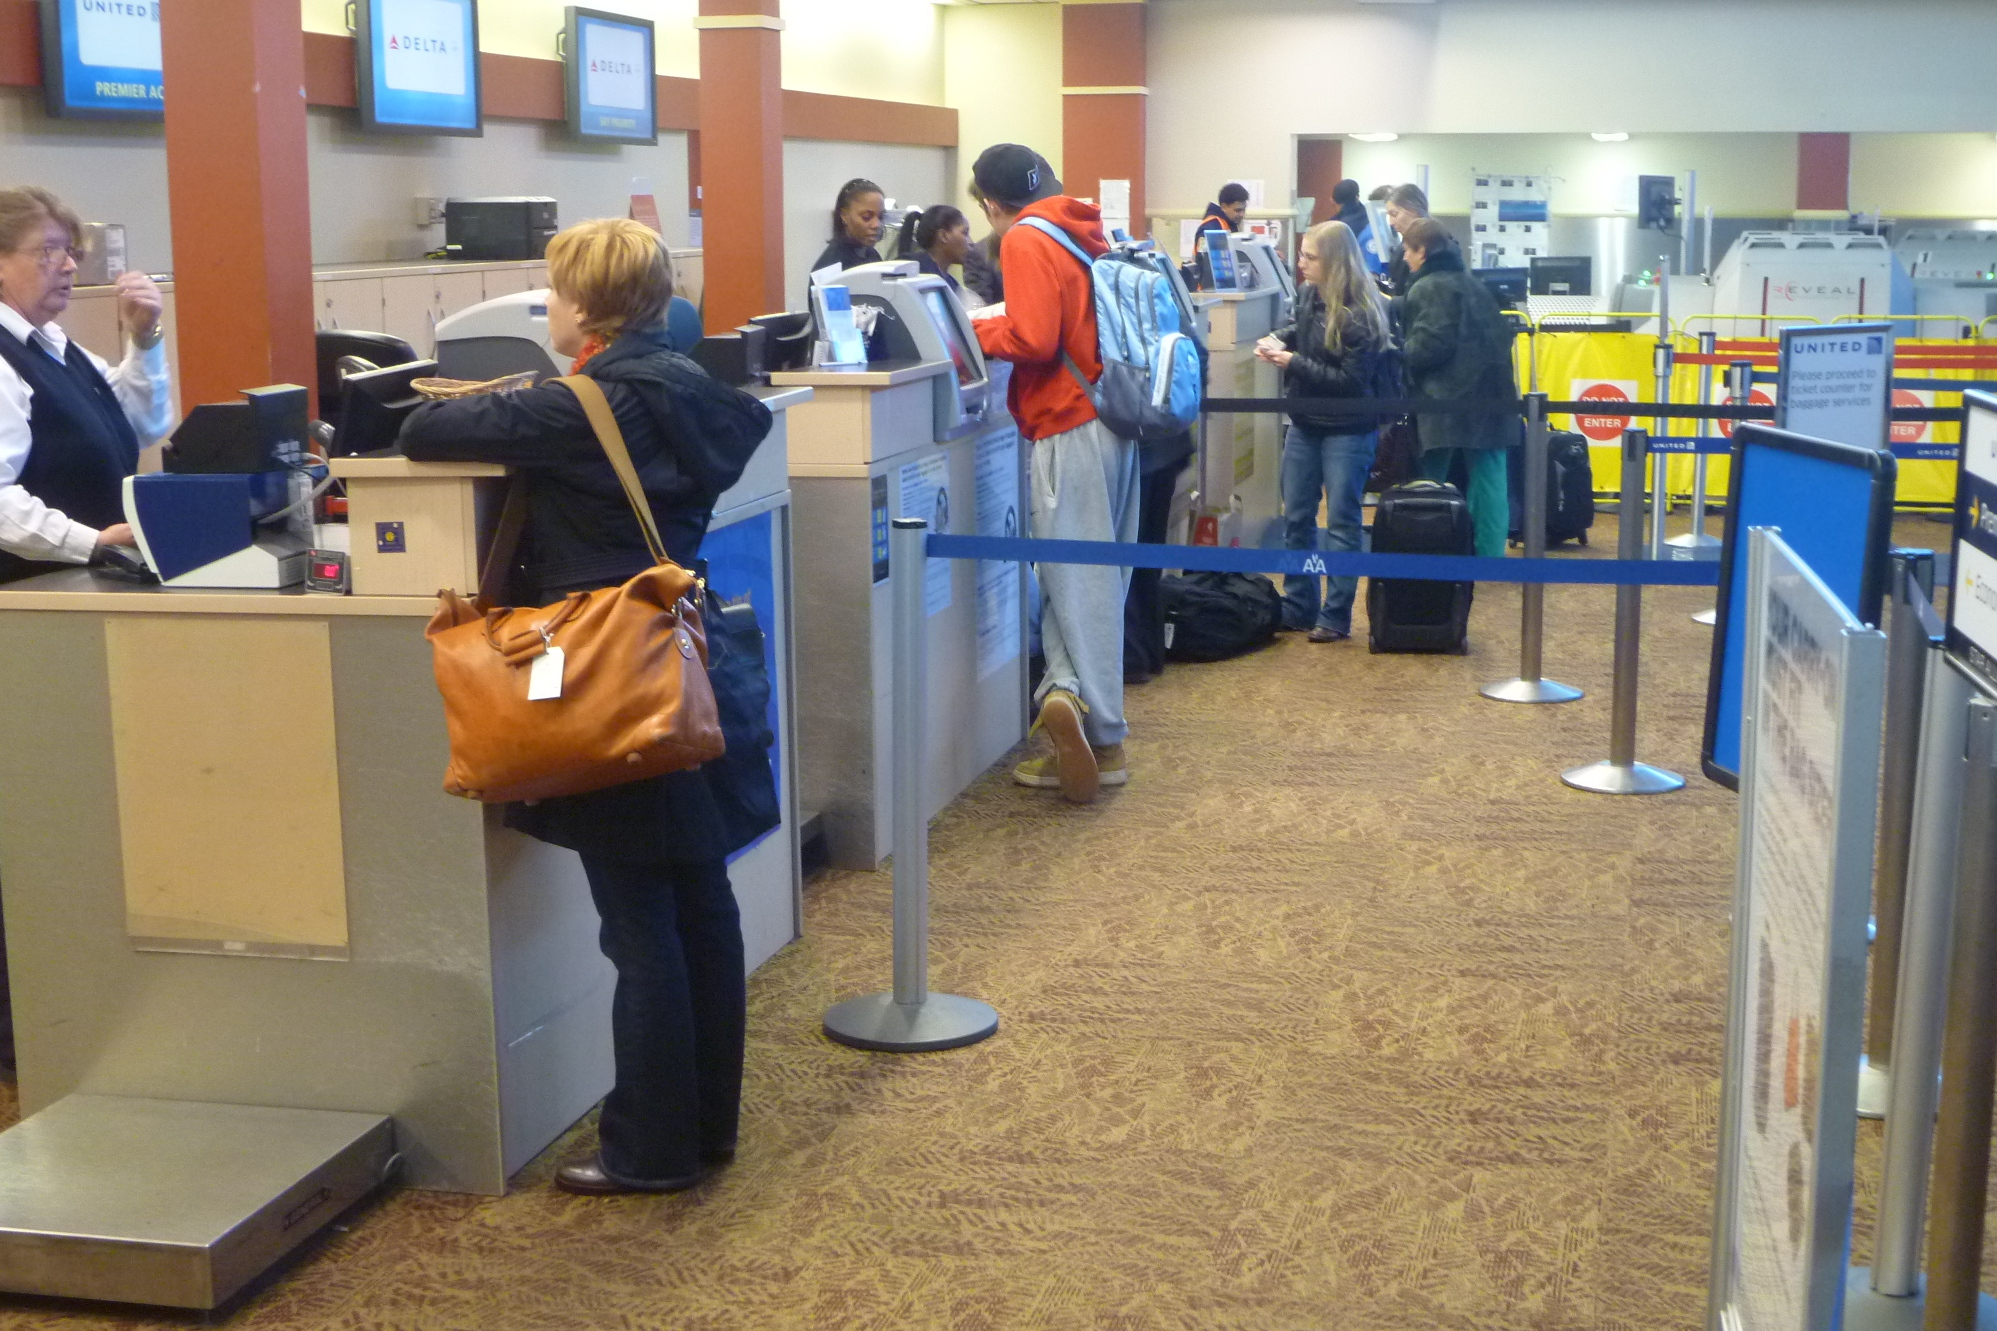 The Westchester County Airport had travelers flying in and out al day Wednesday for Thanksgiving.